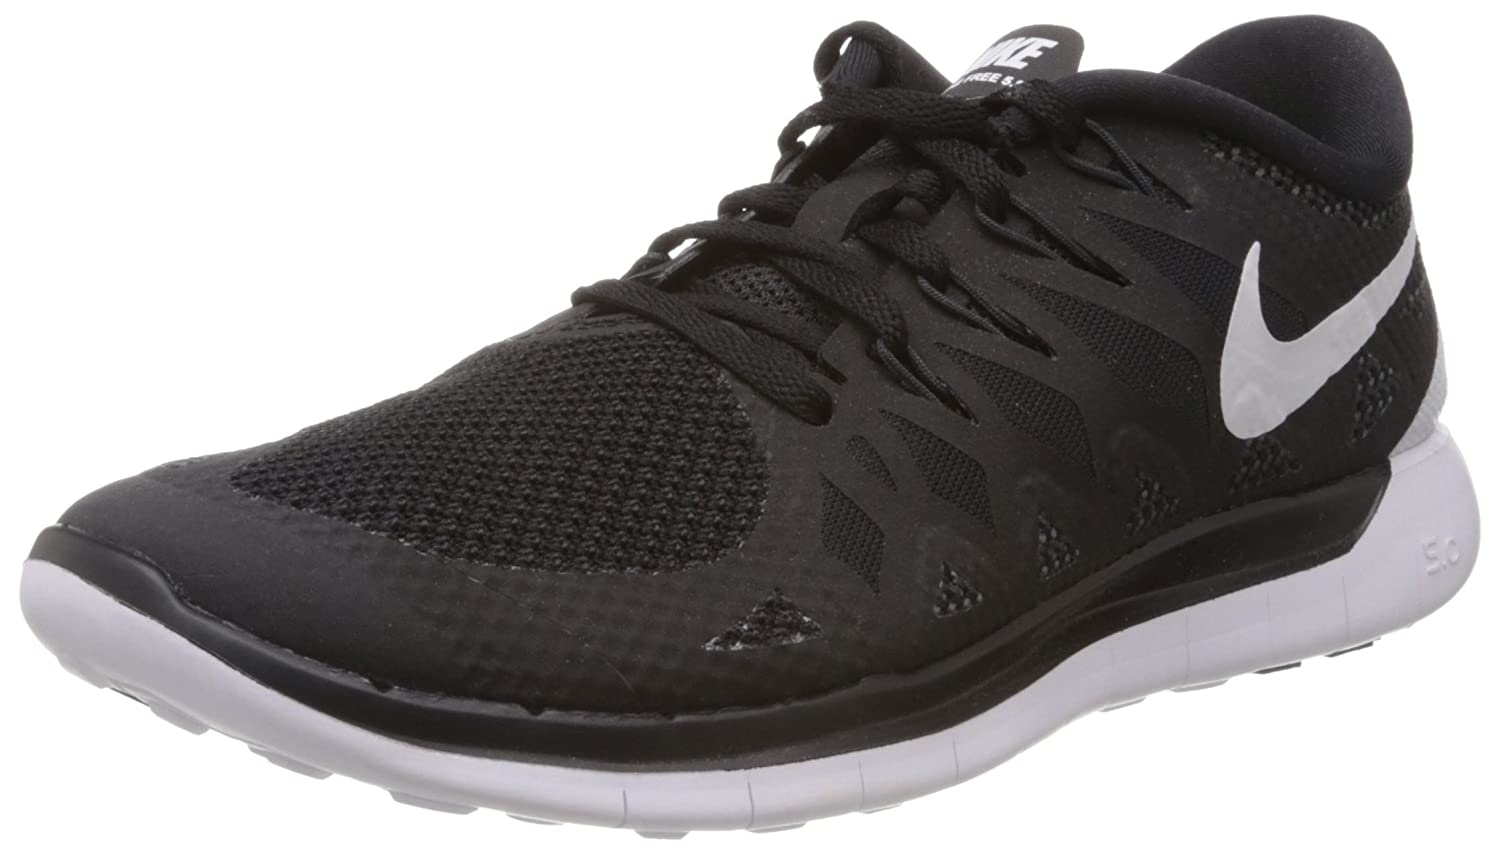 Nikes Mens Free Trainer 5.0